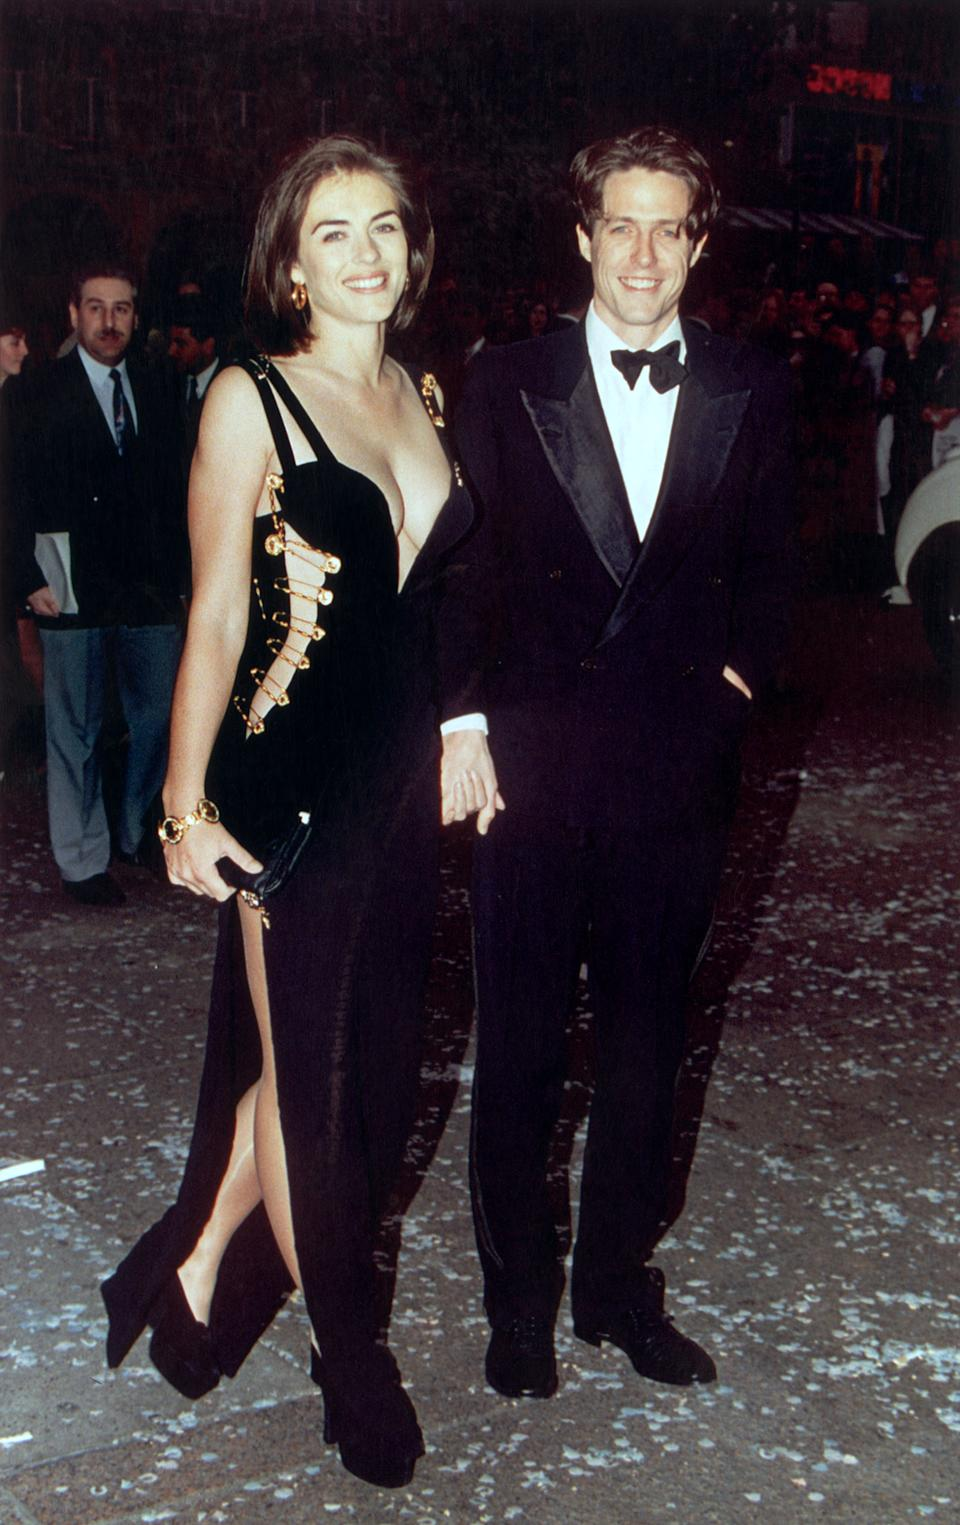 British actor Hugh Grant and his girlfriend Elizabeth Hurley attend the premiere of Grant's latest film, 'Four Weddings and a Funeral' in London, 11th May 1994. (Photo by Gareth Davies/Mission Pictures/Getty Images) *** North American Sales Only ***